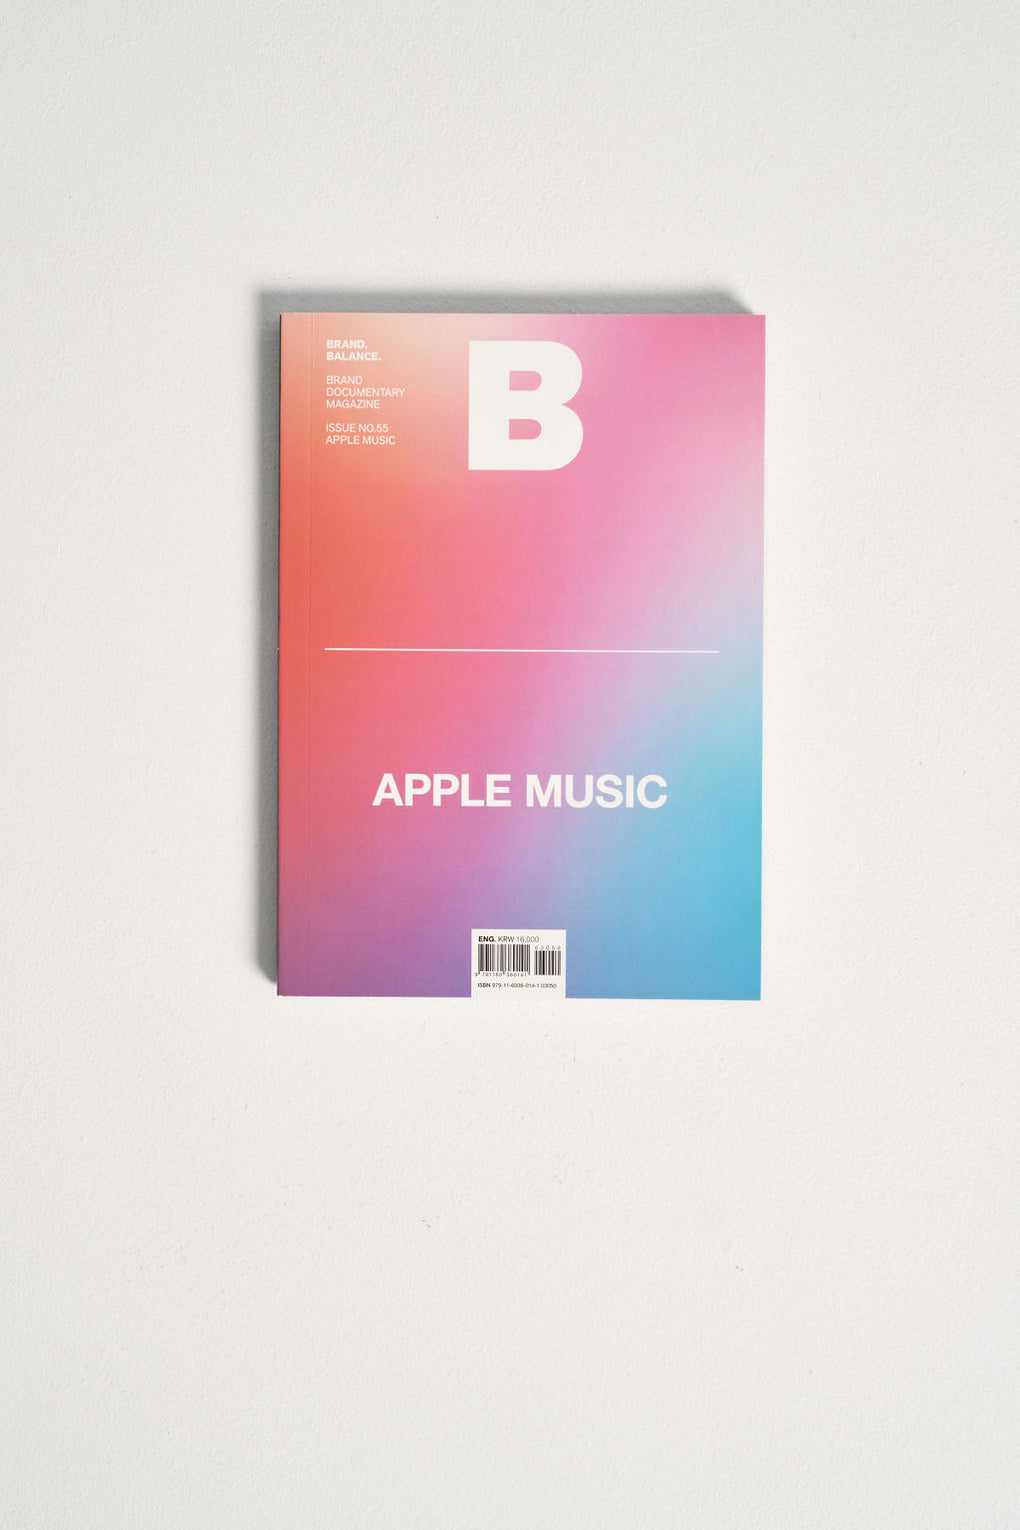 B Magazine: Apple Music